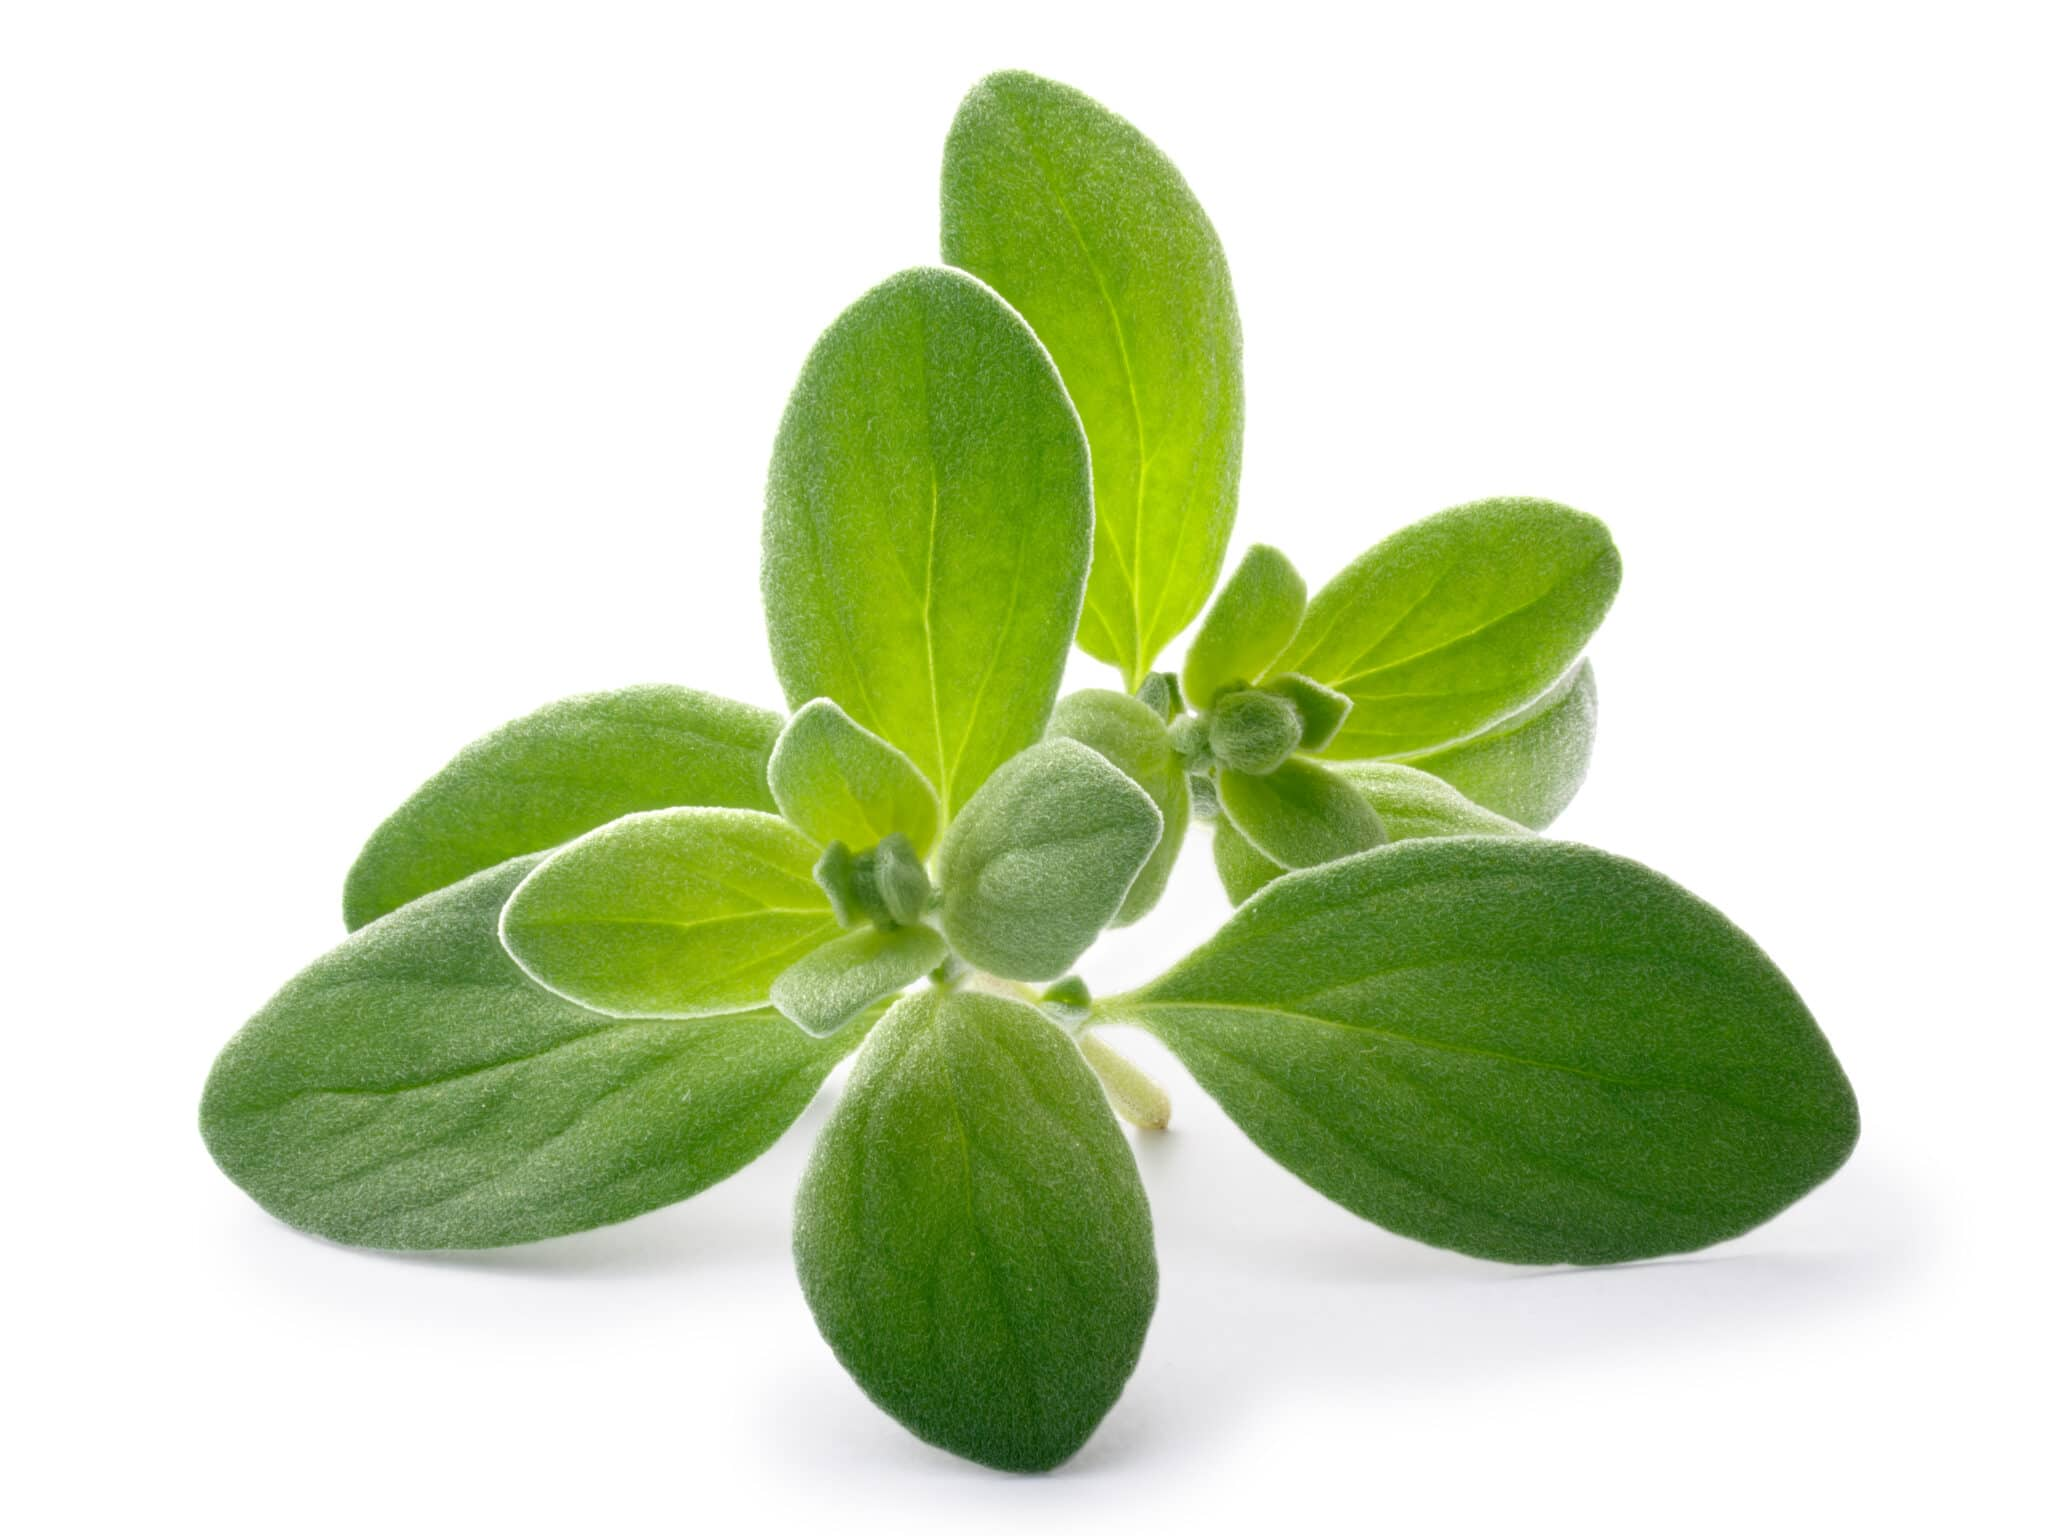 A sprig of fresh sweet marjoram against a bright white tabletop.